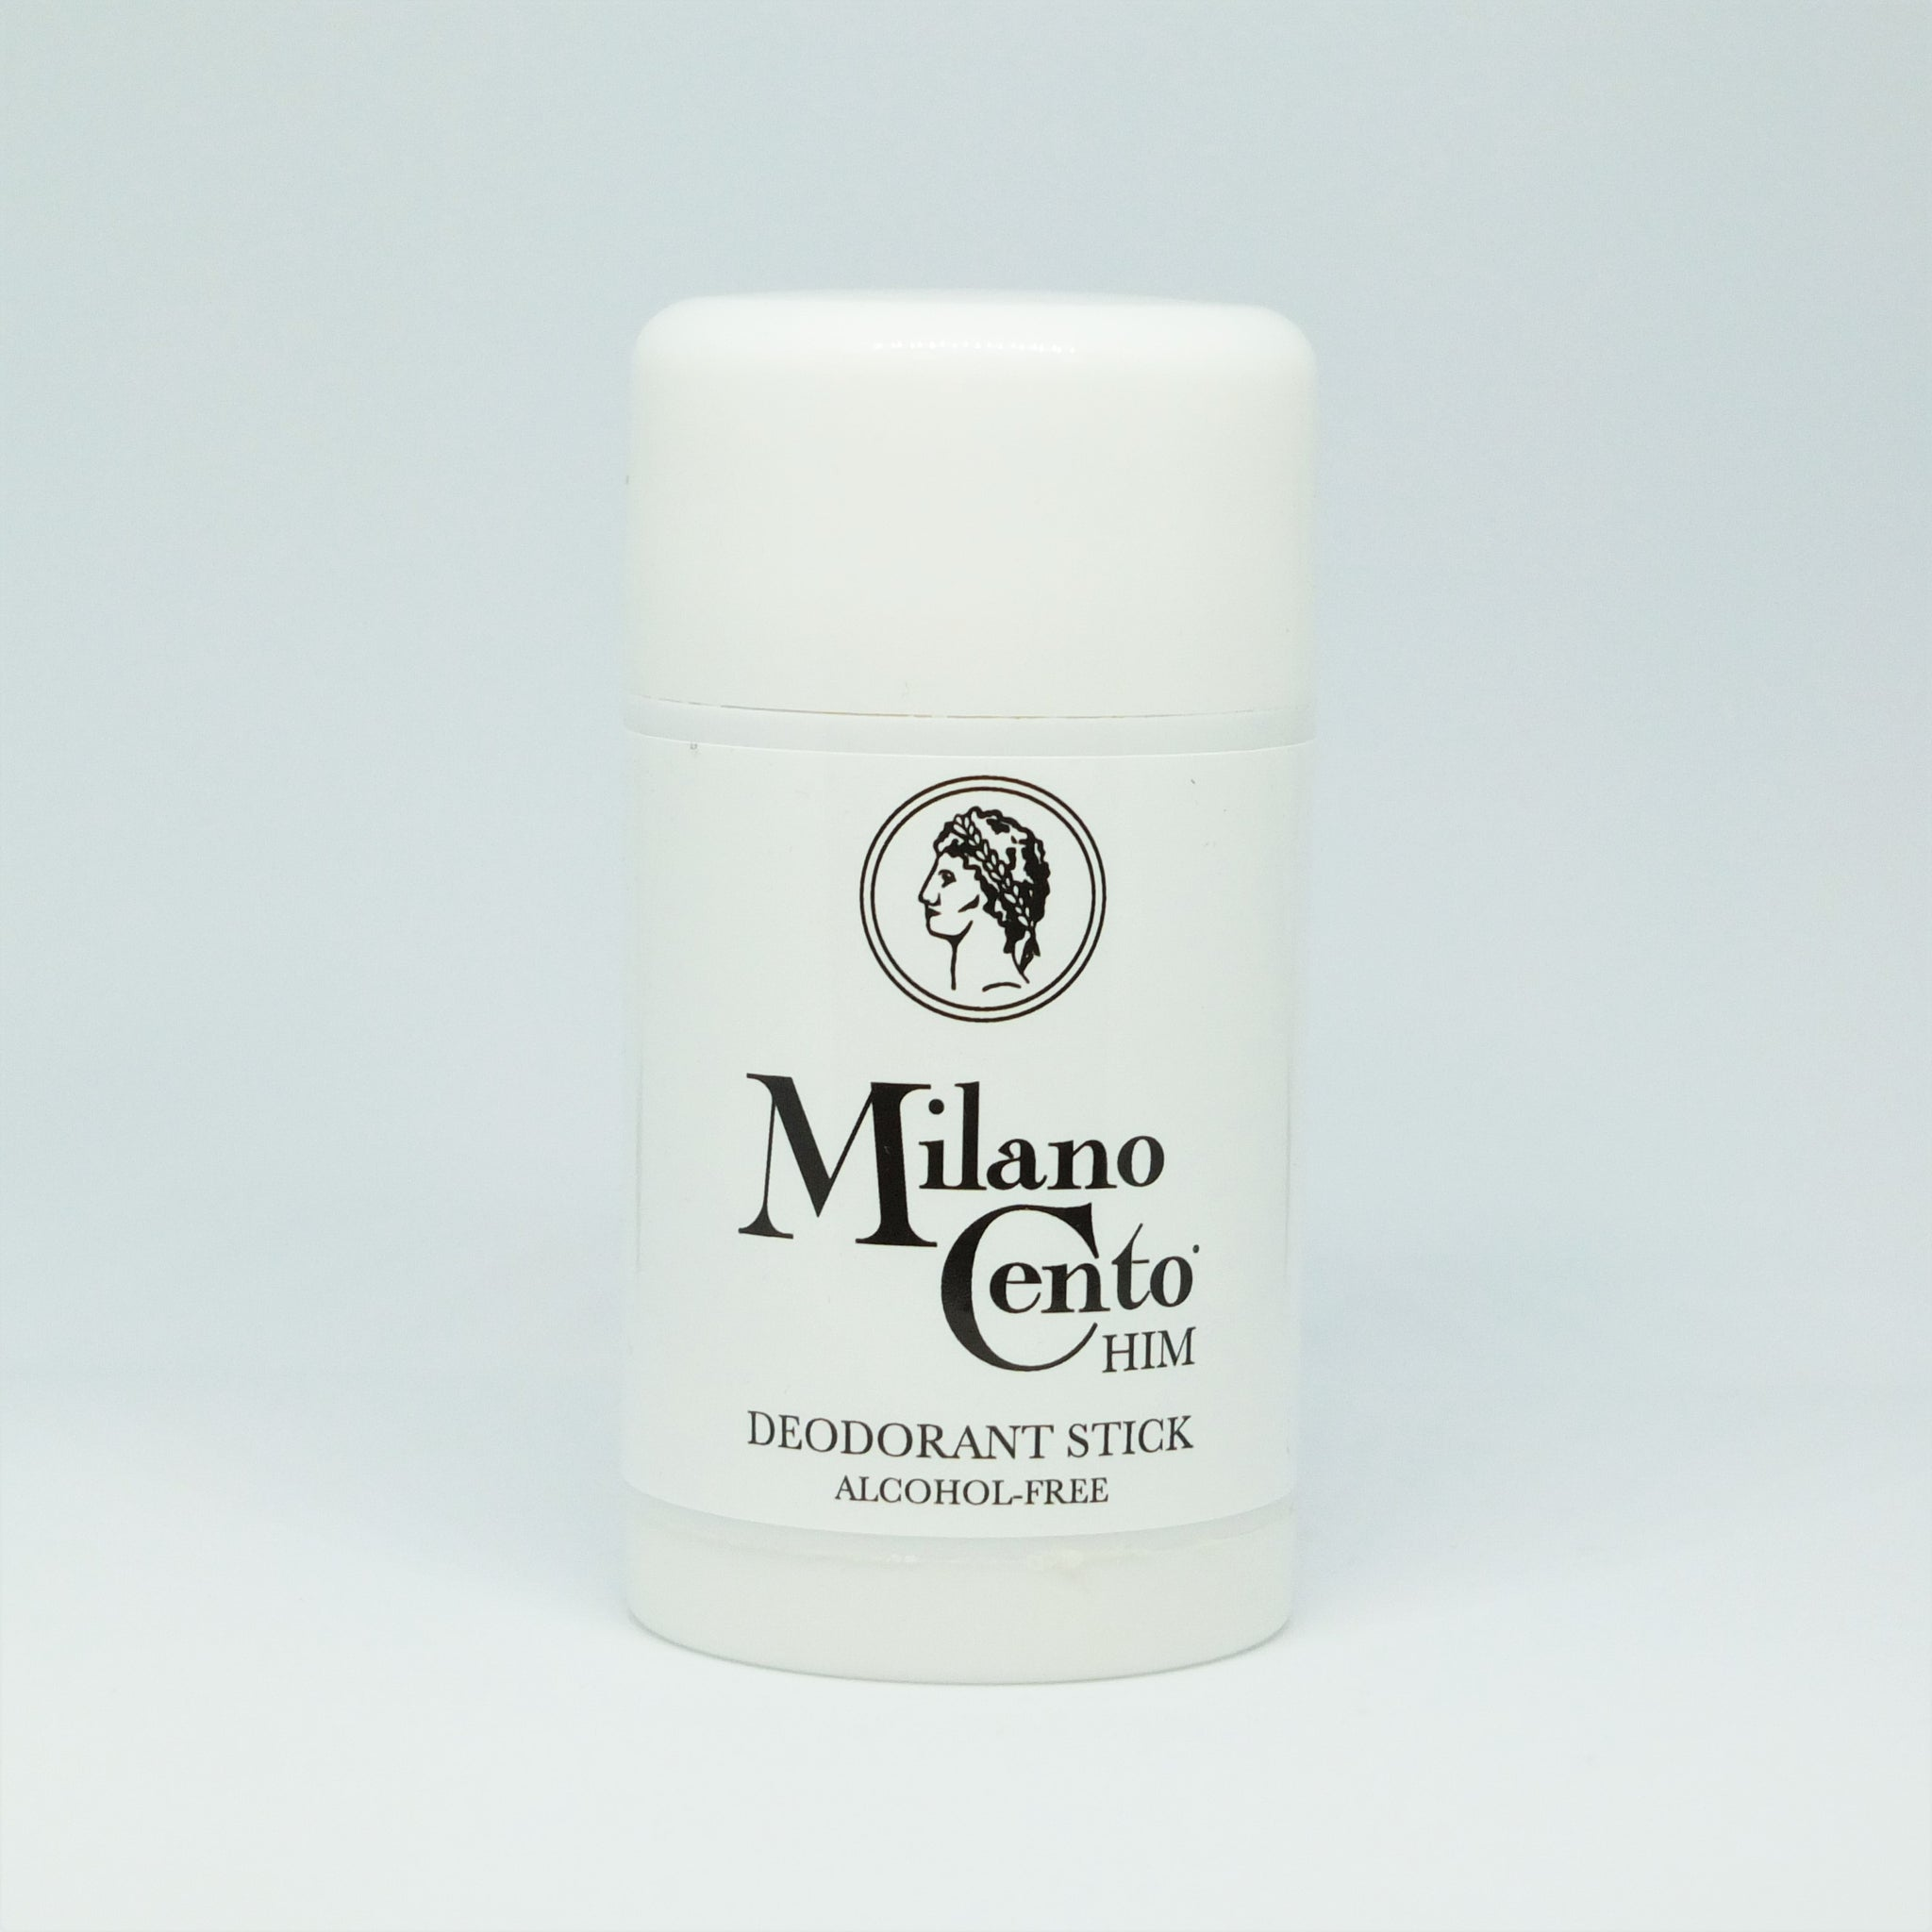 Milano Cento Him Men's Deodorant Stick